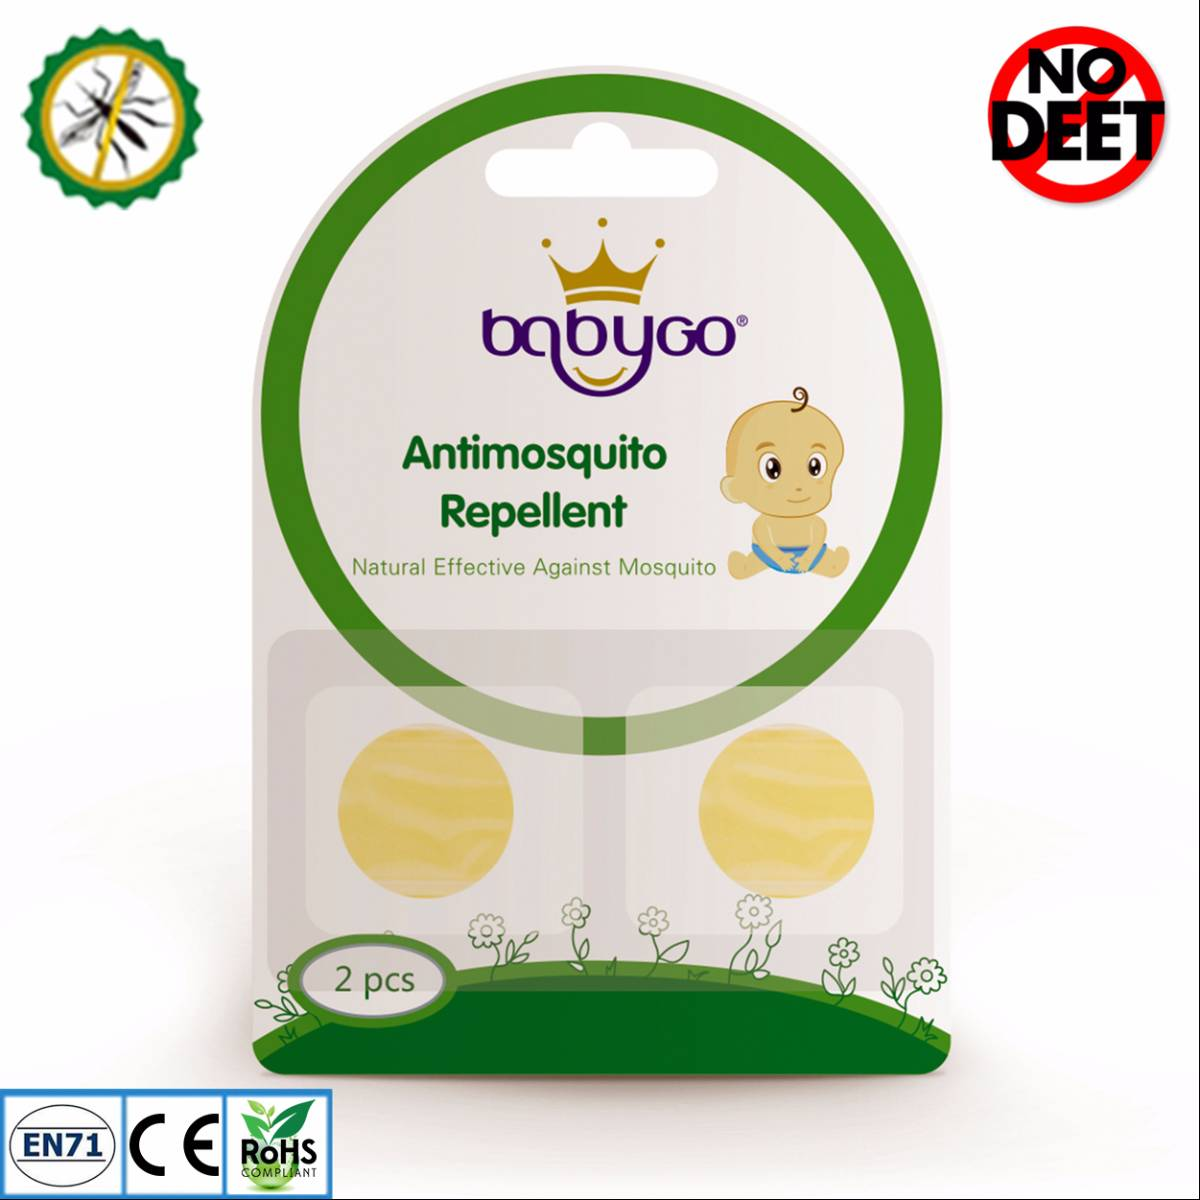 Babygo Refill Smiley Mosquito Repellent (isi Ulang Anti Nyamuk)0